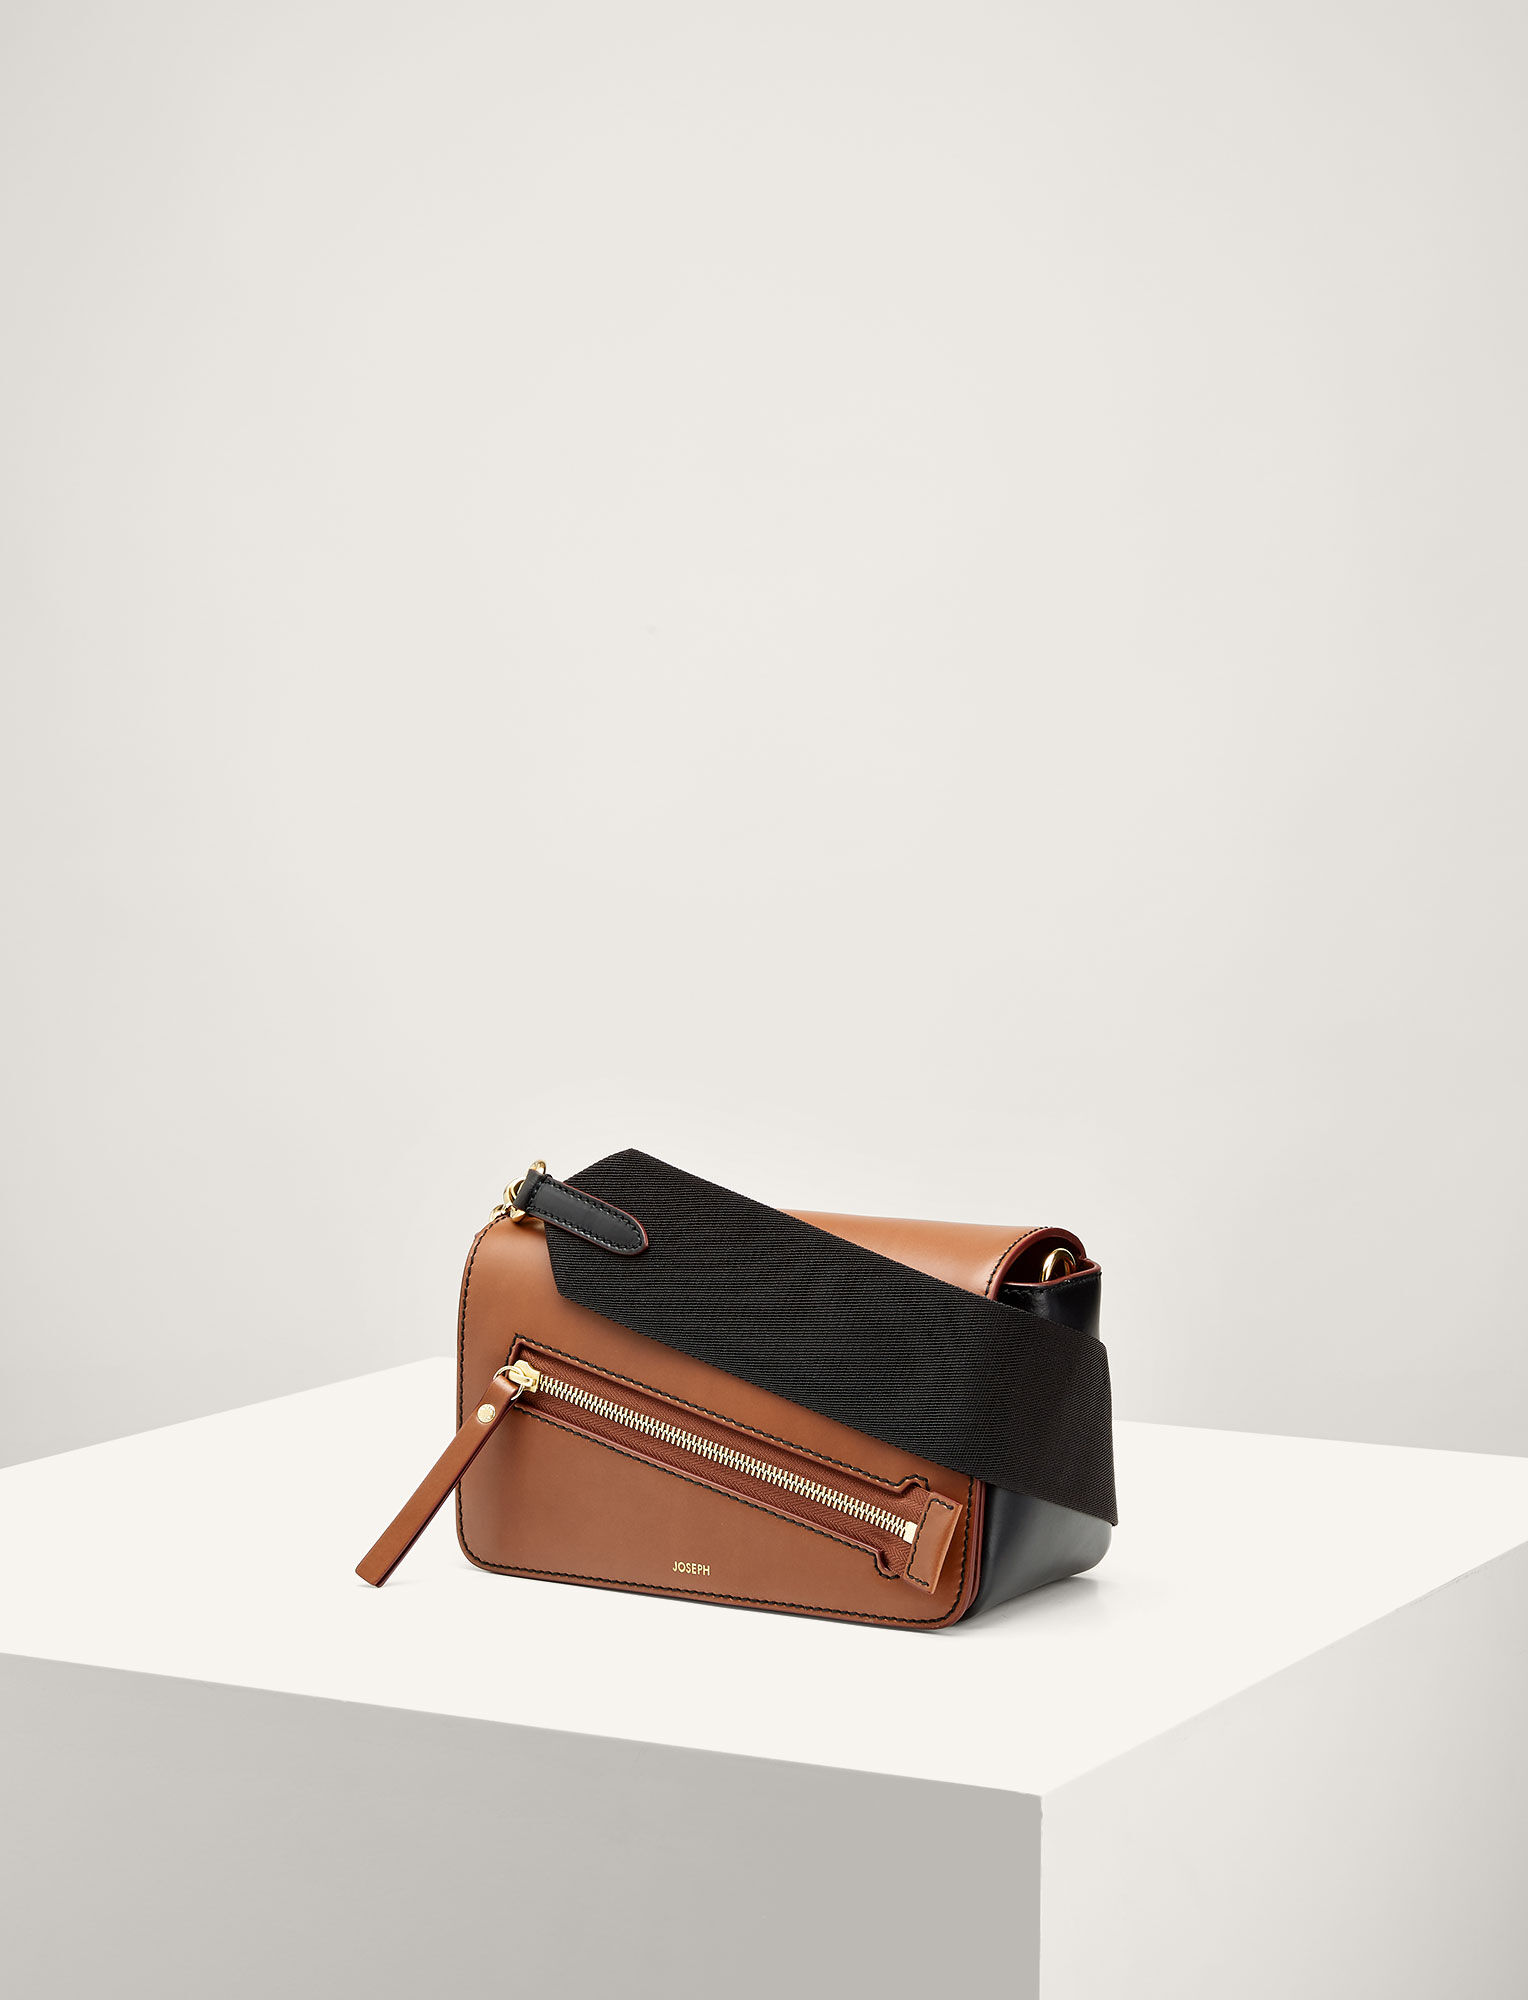 Joseph, Leather Warwick Bag, in SADDLE/BLACK